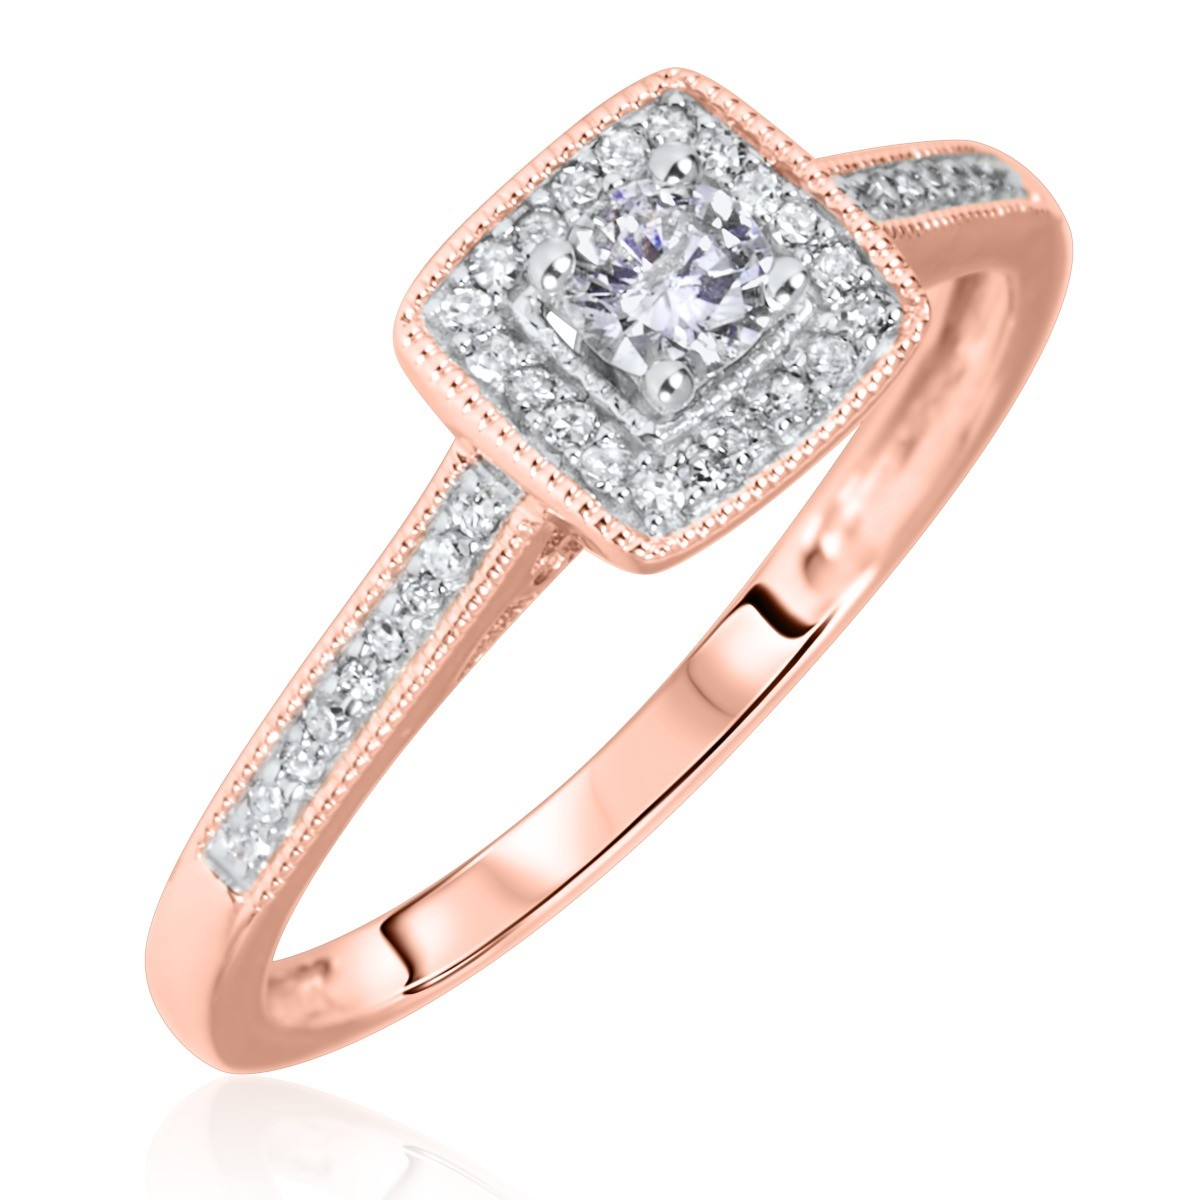 1/5 Carat T.W. Round Cut Diamond Ladies Engagement Ring 14K Rose Gold